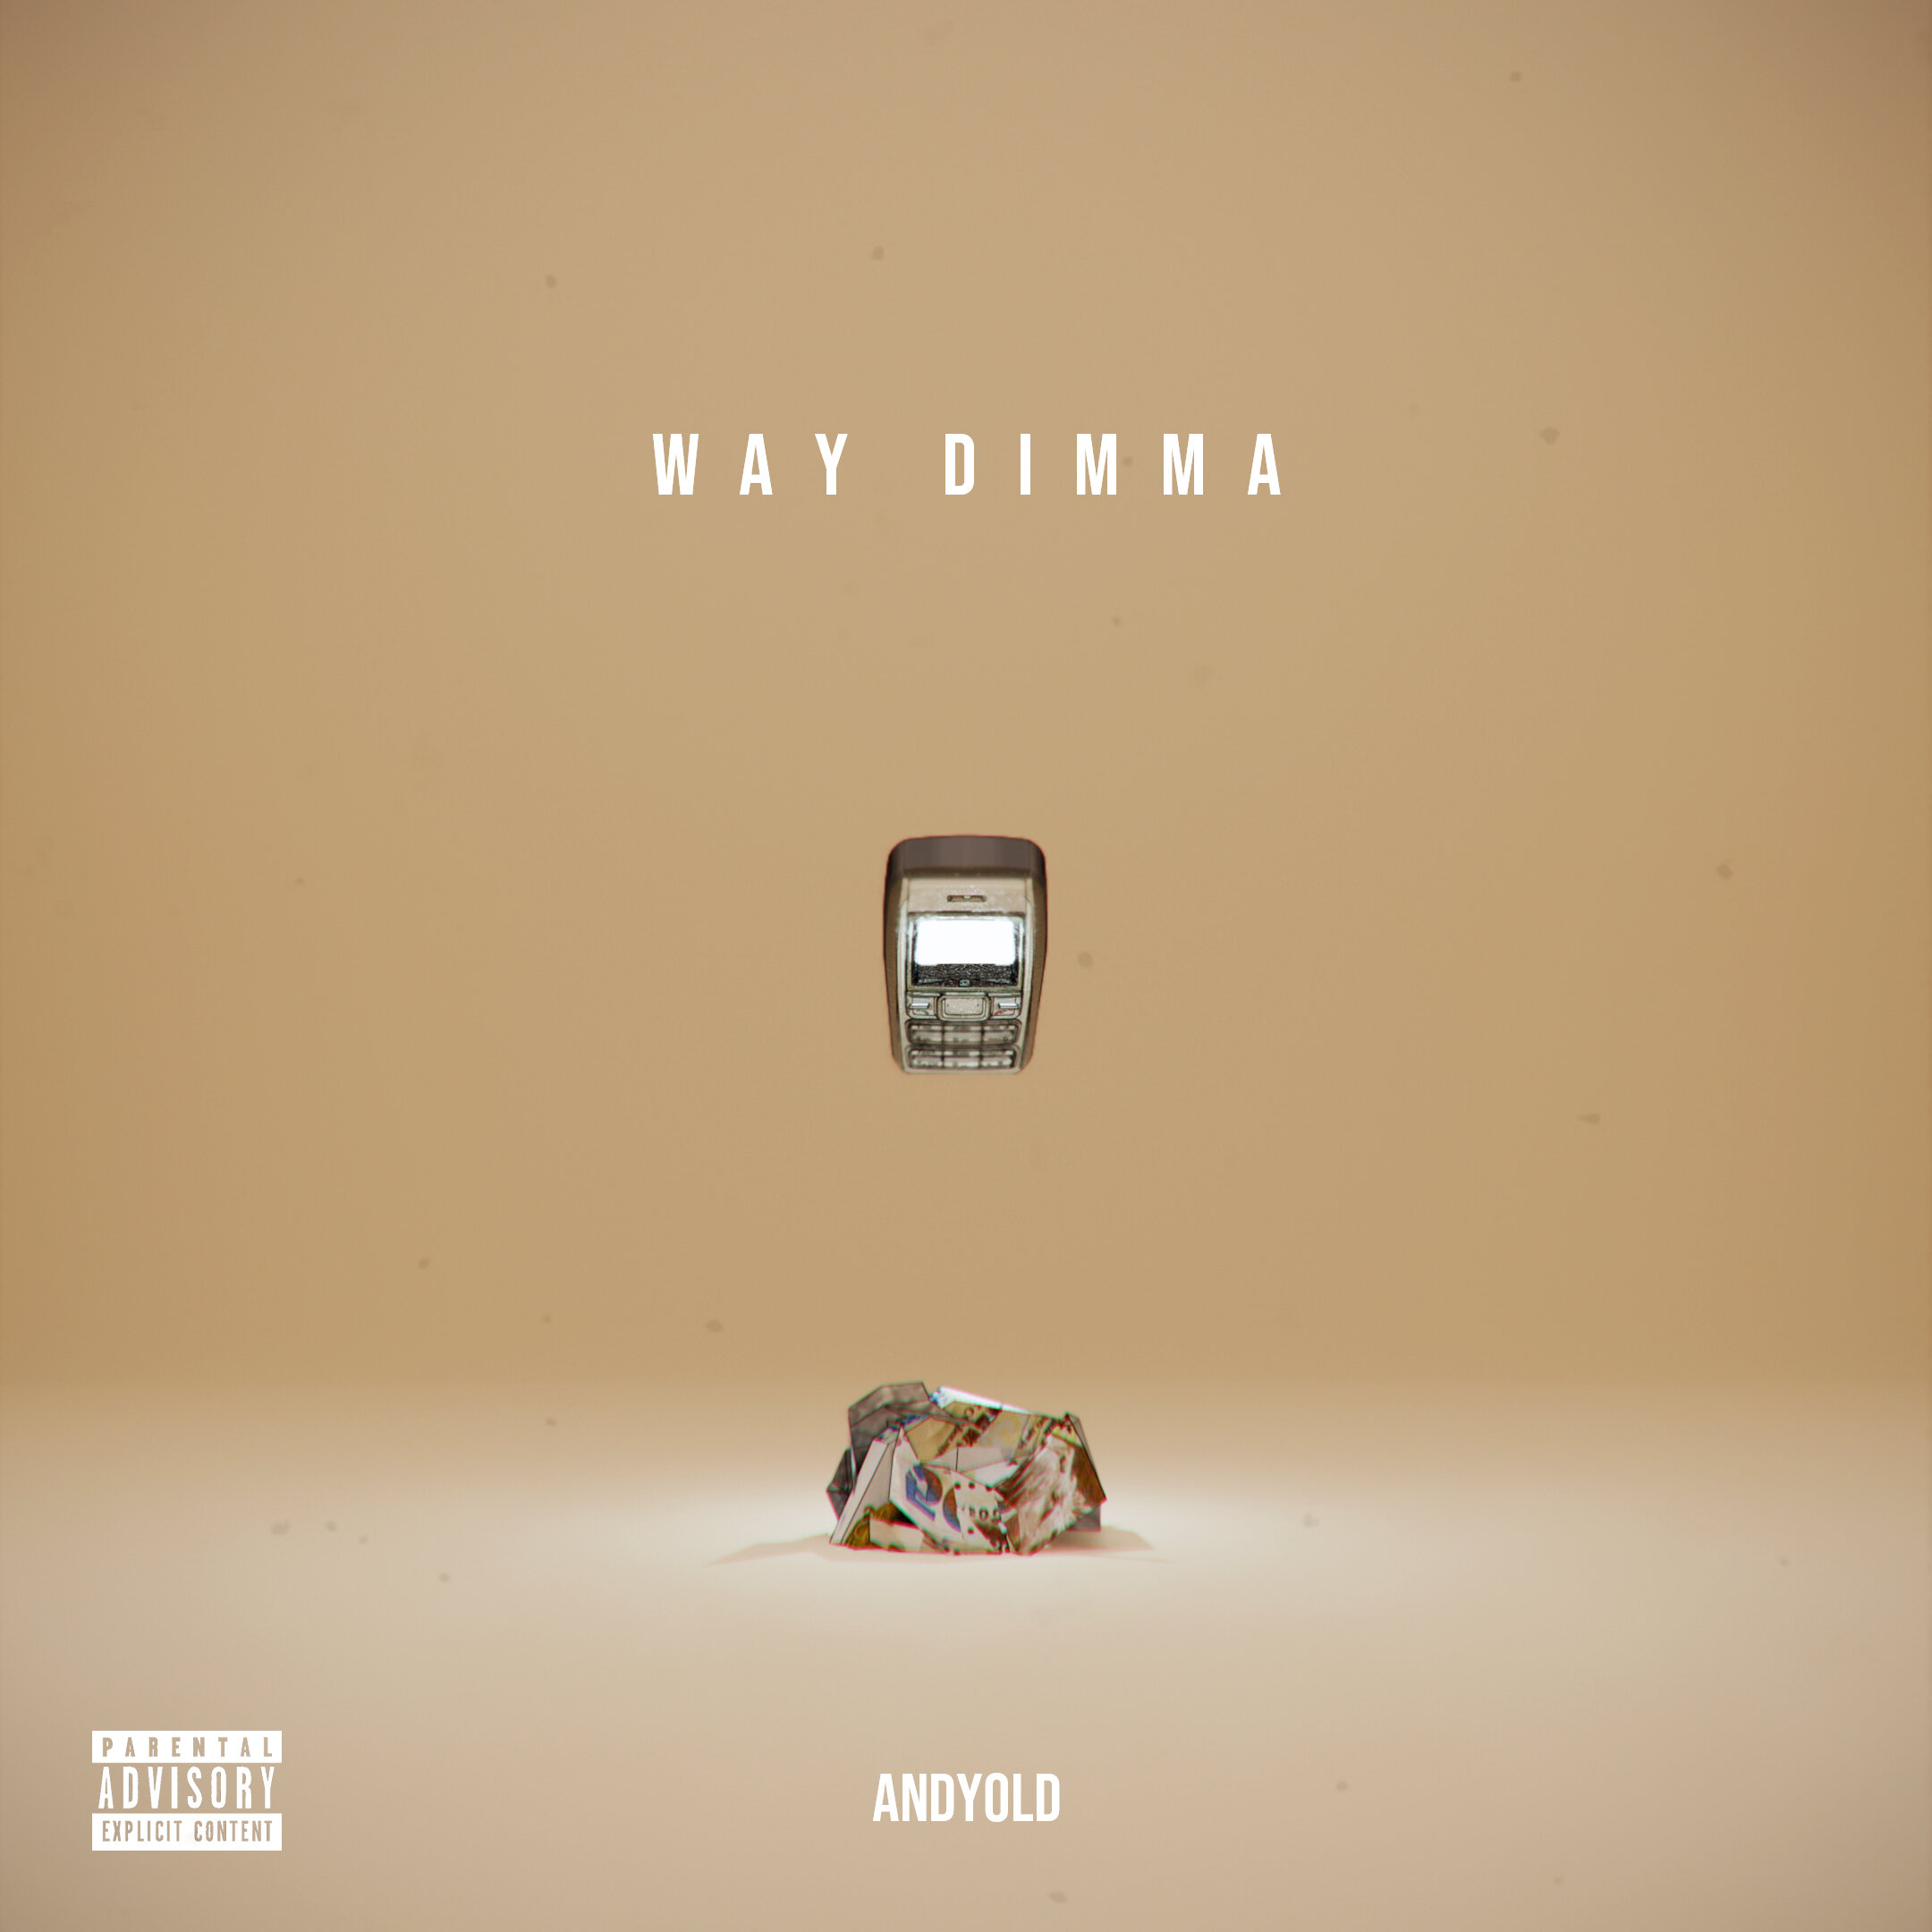 Way Dimma Cover 01 Edit.jpg